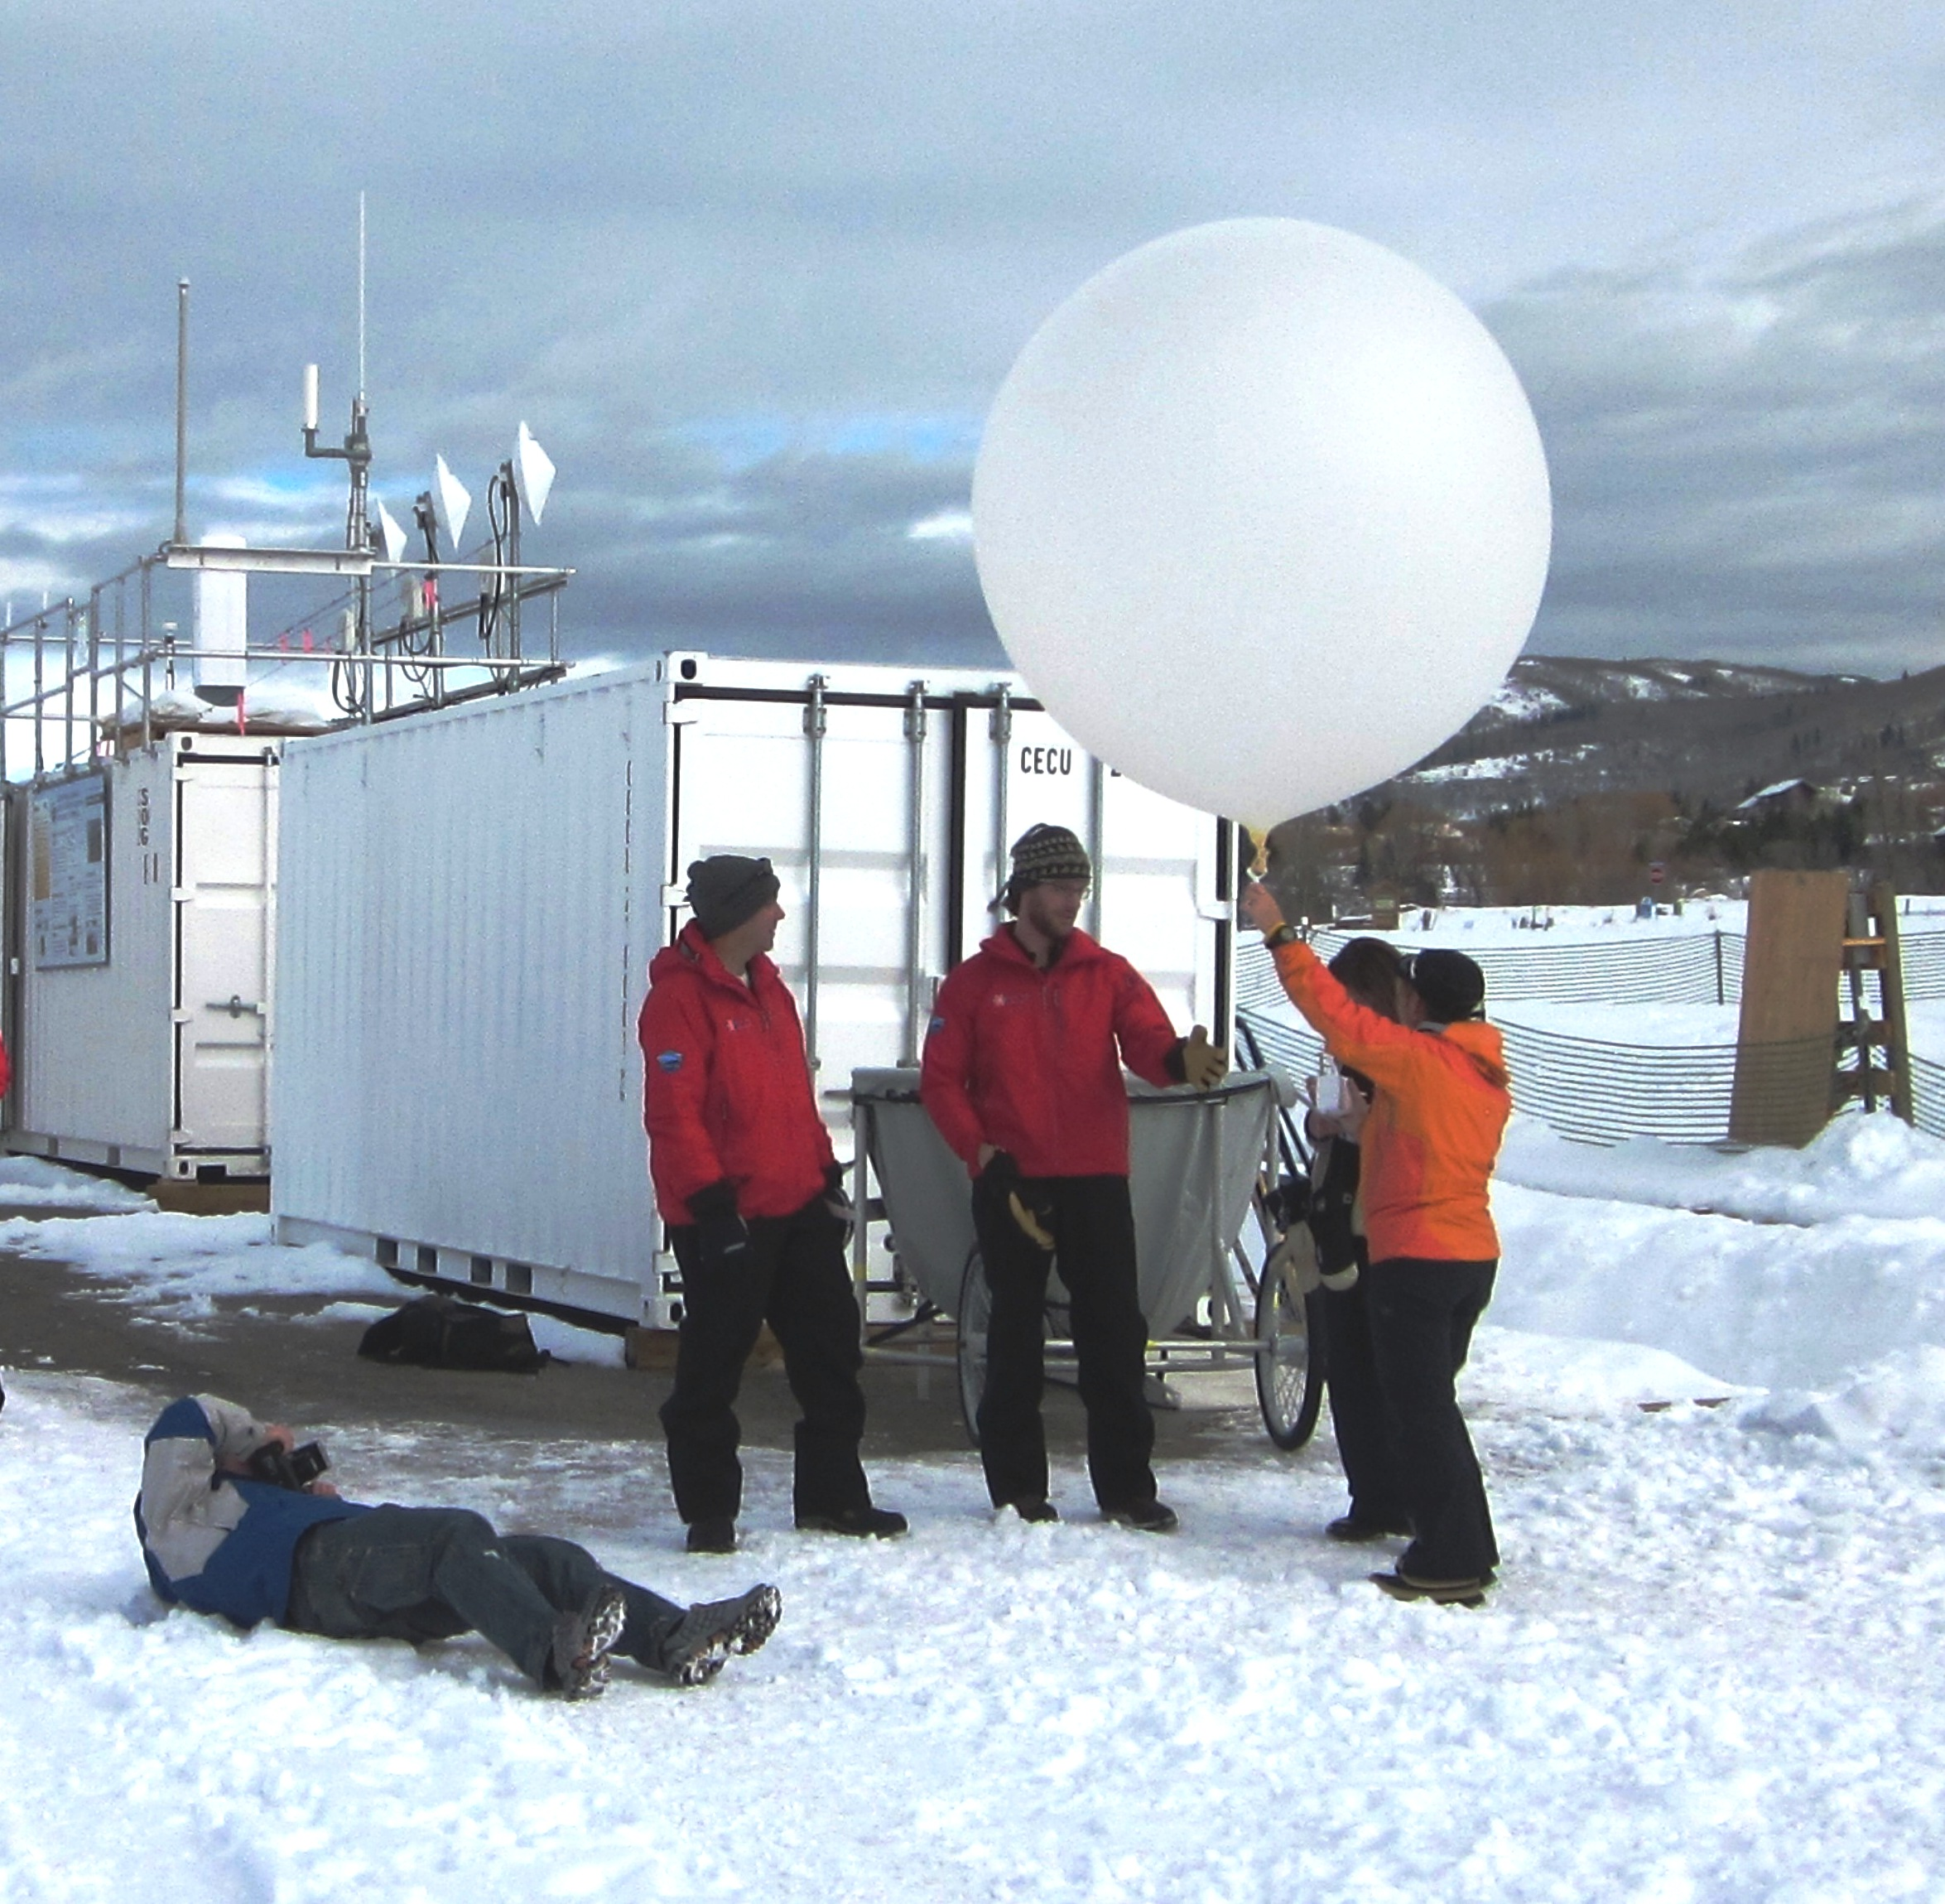 News Brief: STORMVEX delivers cloud data for scientists worldwide